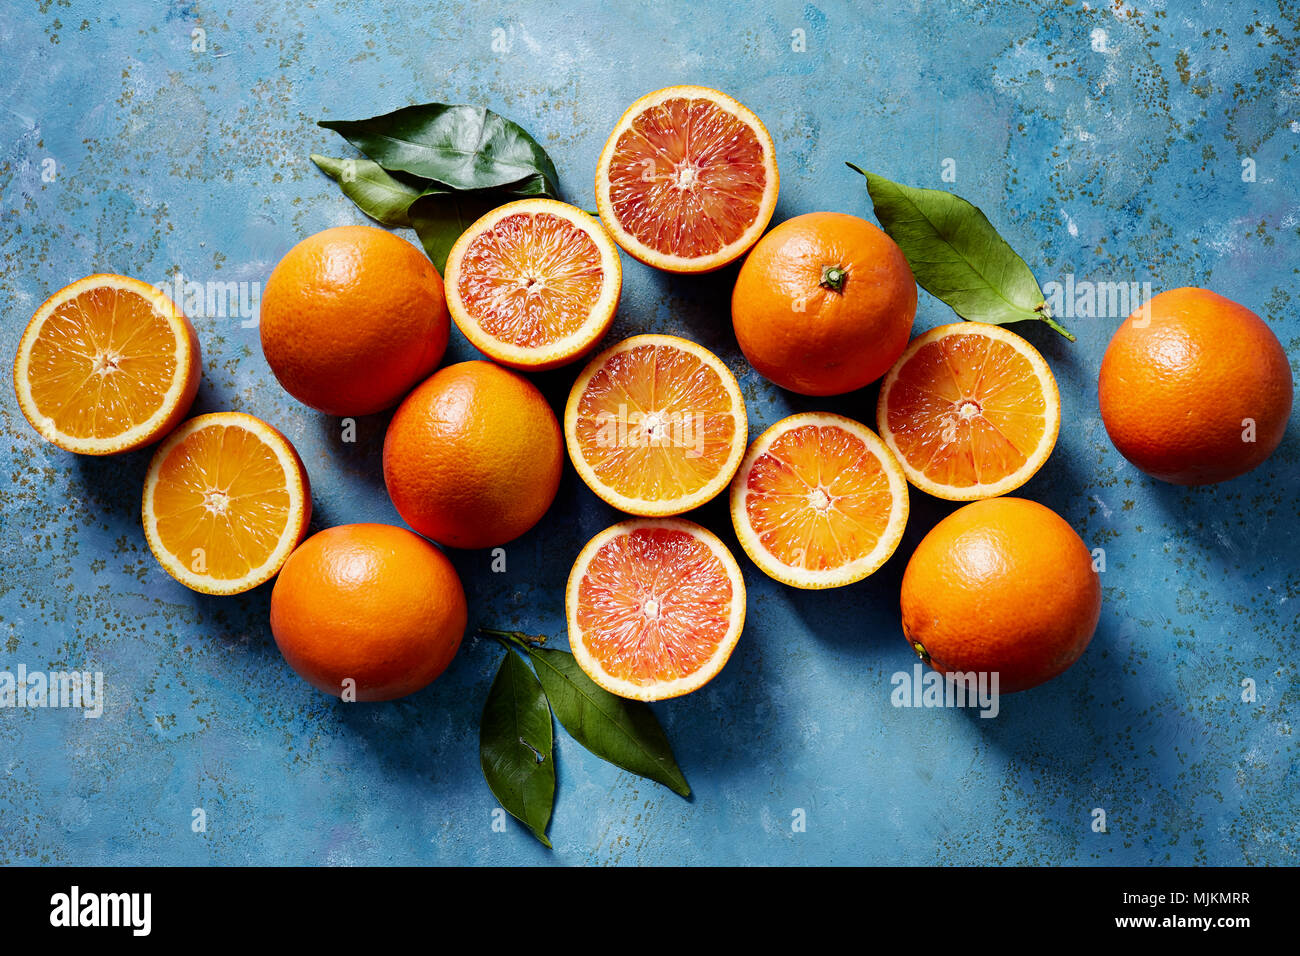 Blood oranges whole and sliced on a blue surface (seen from above). - Stock Image